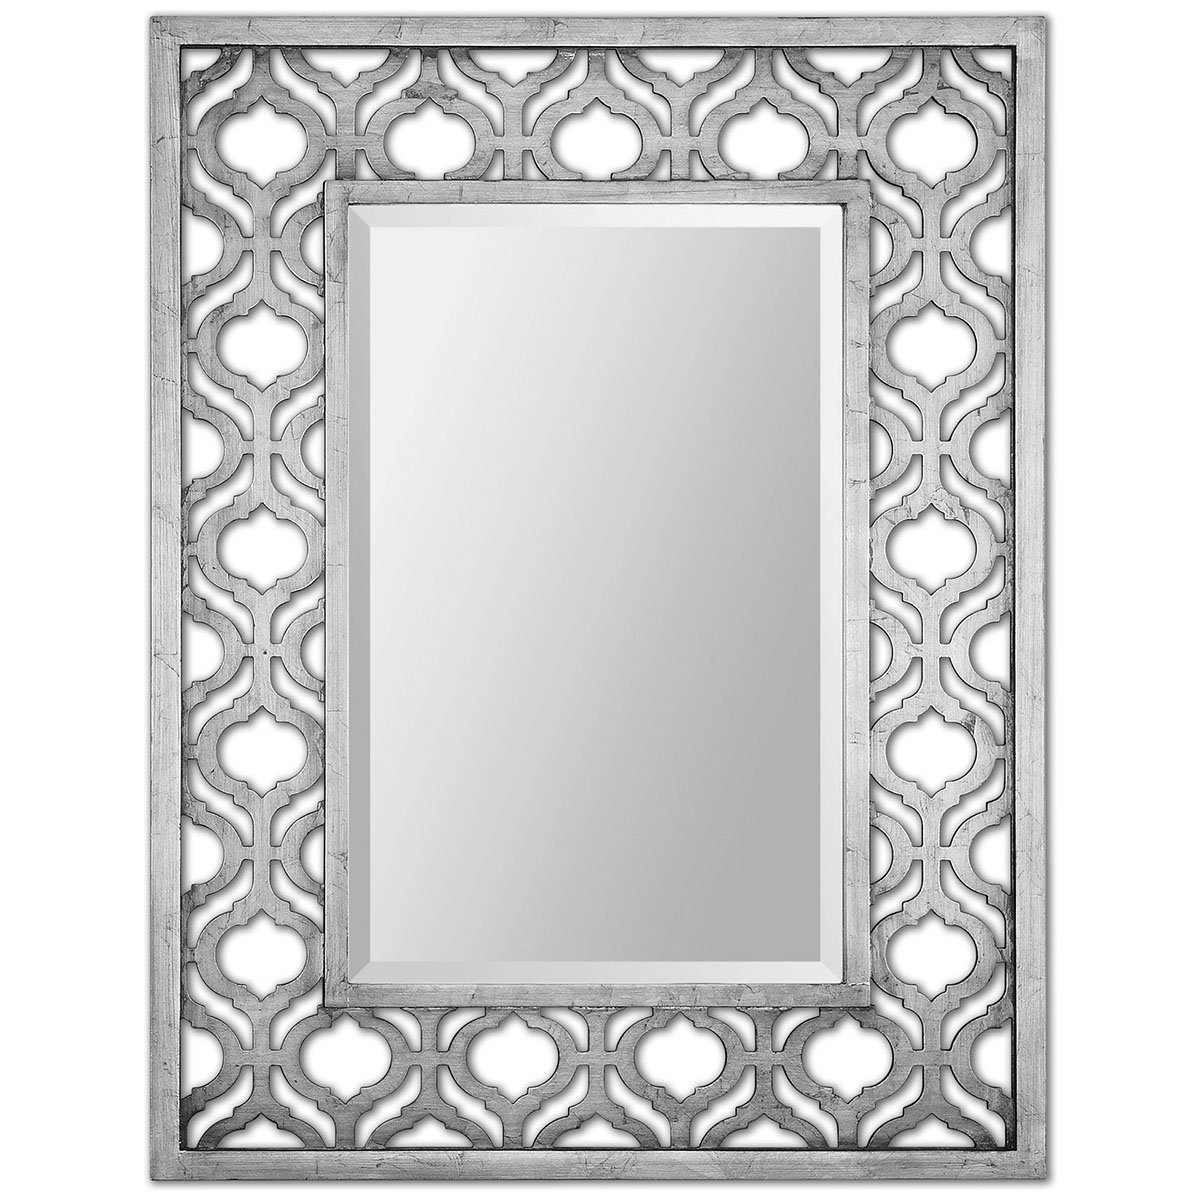 Trendy Ulus Accent Mirrors With Regard To Uttermost 13863 Sorbolo Mirror, Silver (View 10 of 20)